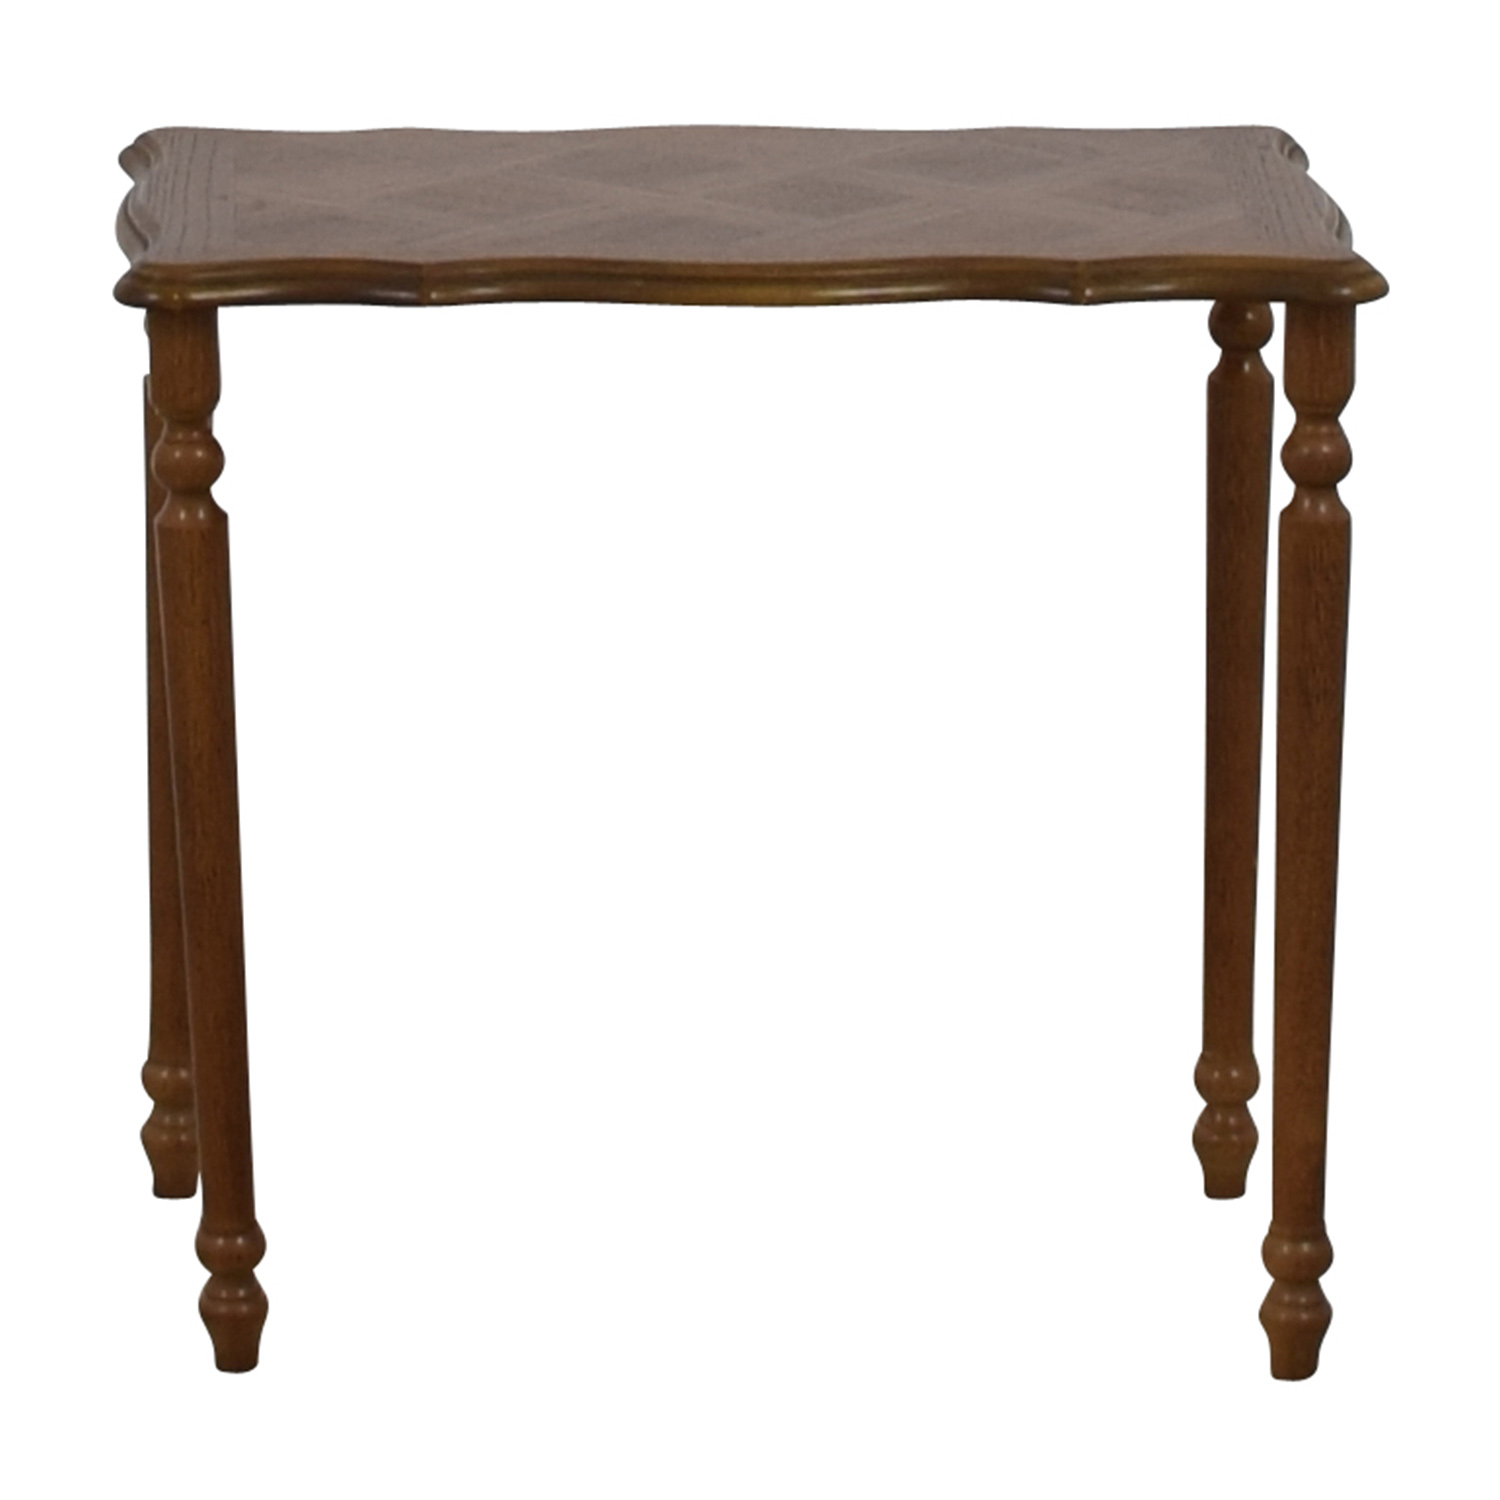 Wooden Utility Table sale